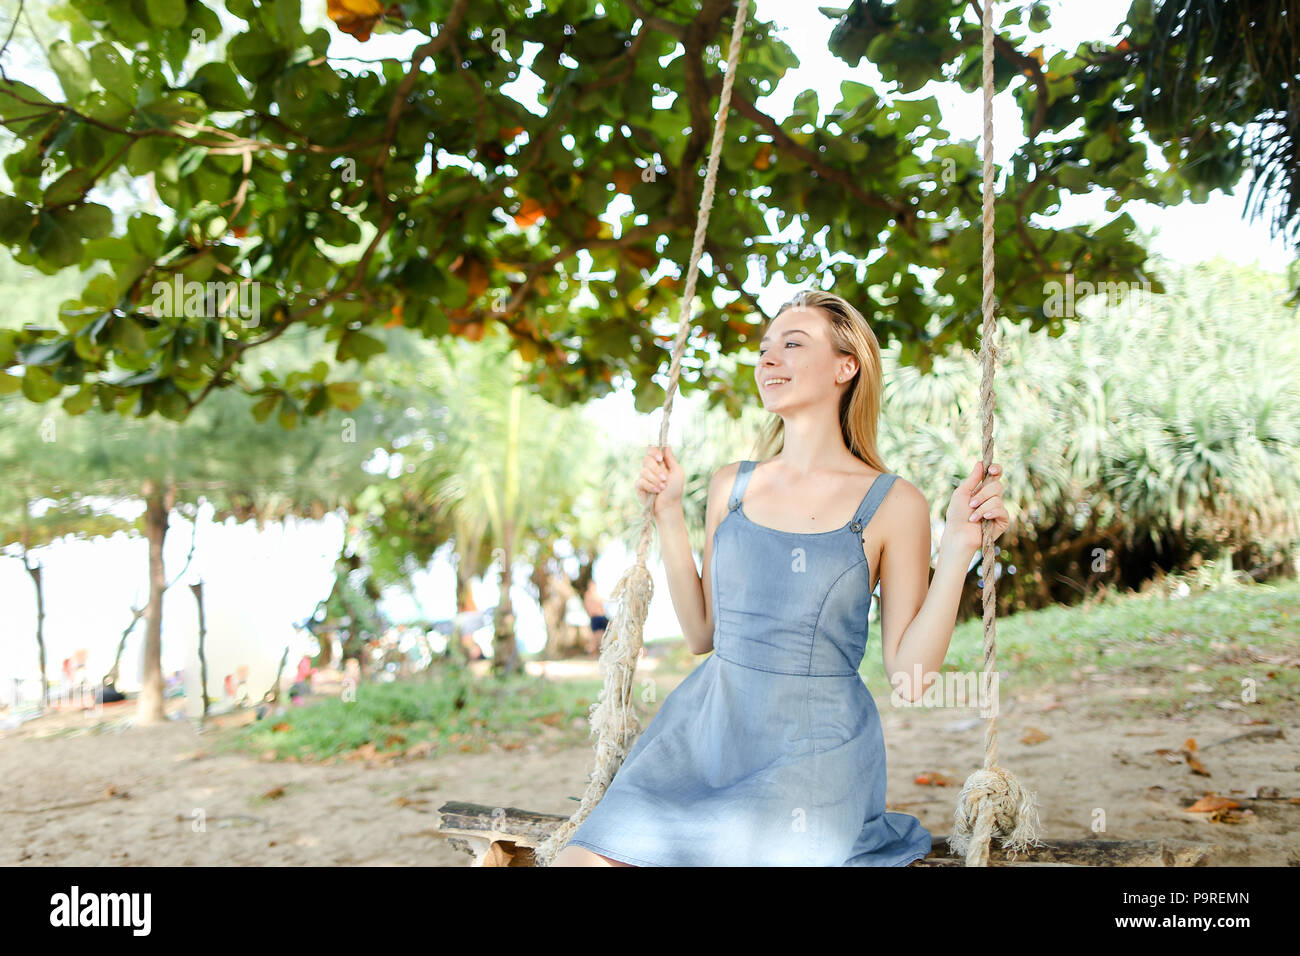 Young nice woman wearing jeans dress and riding on swing, sand in background. - Stock Image